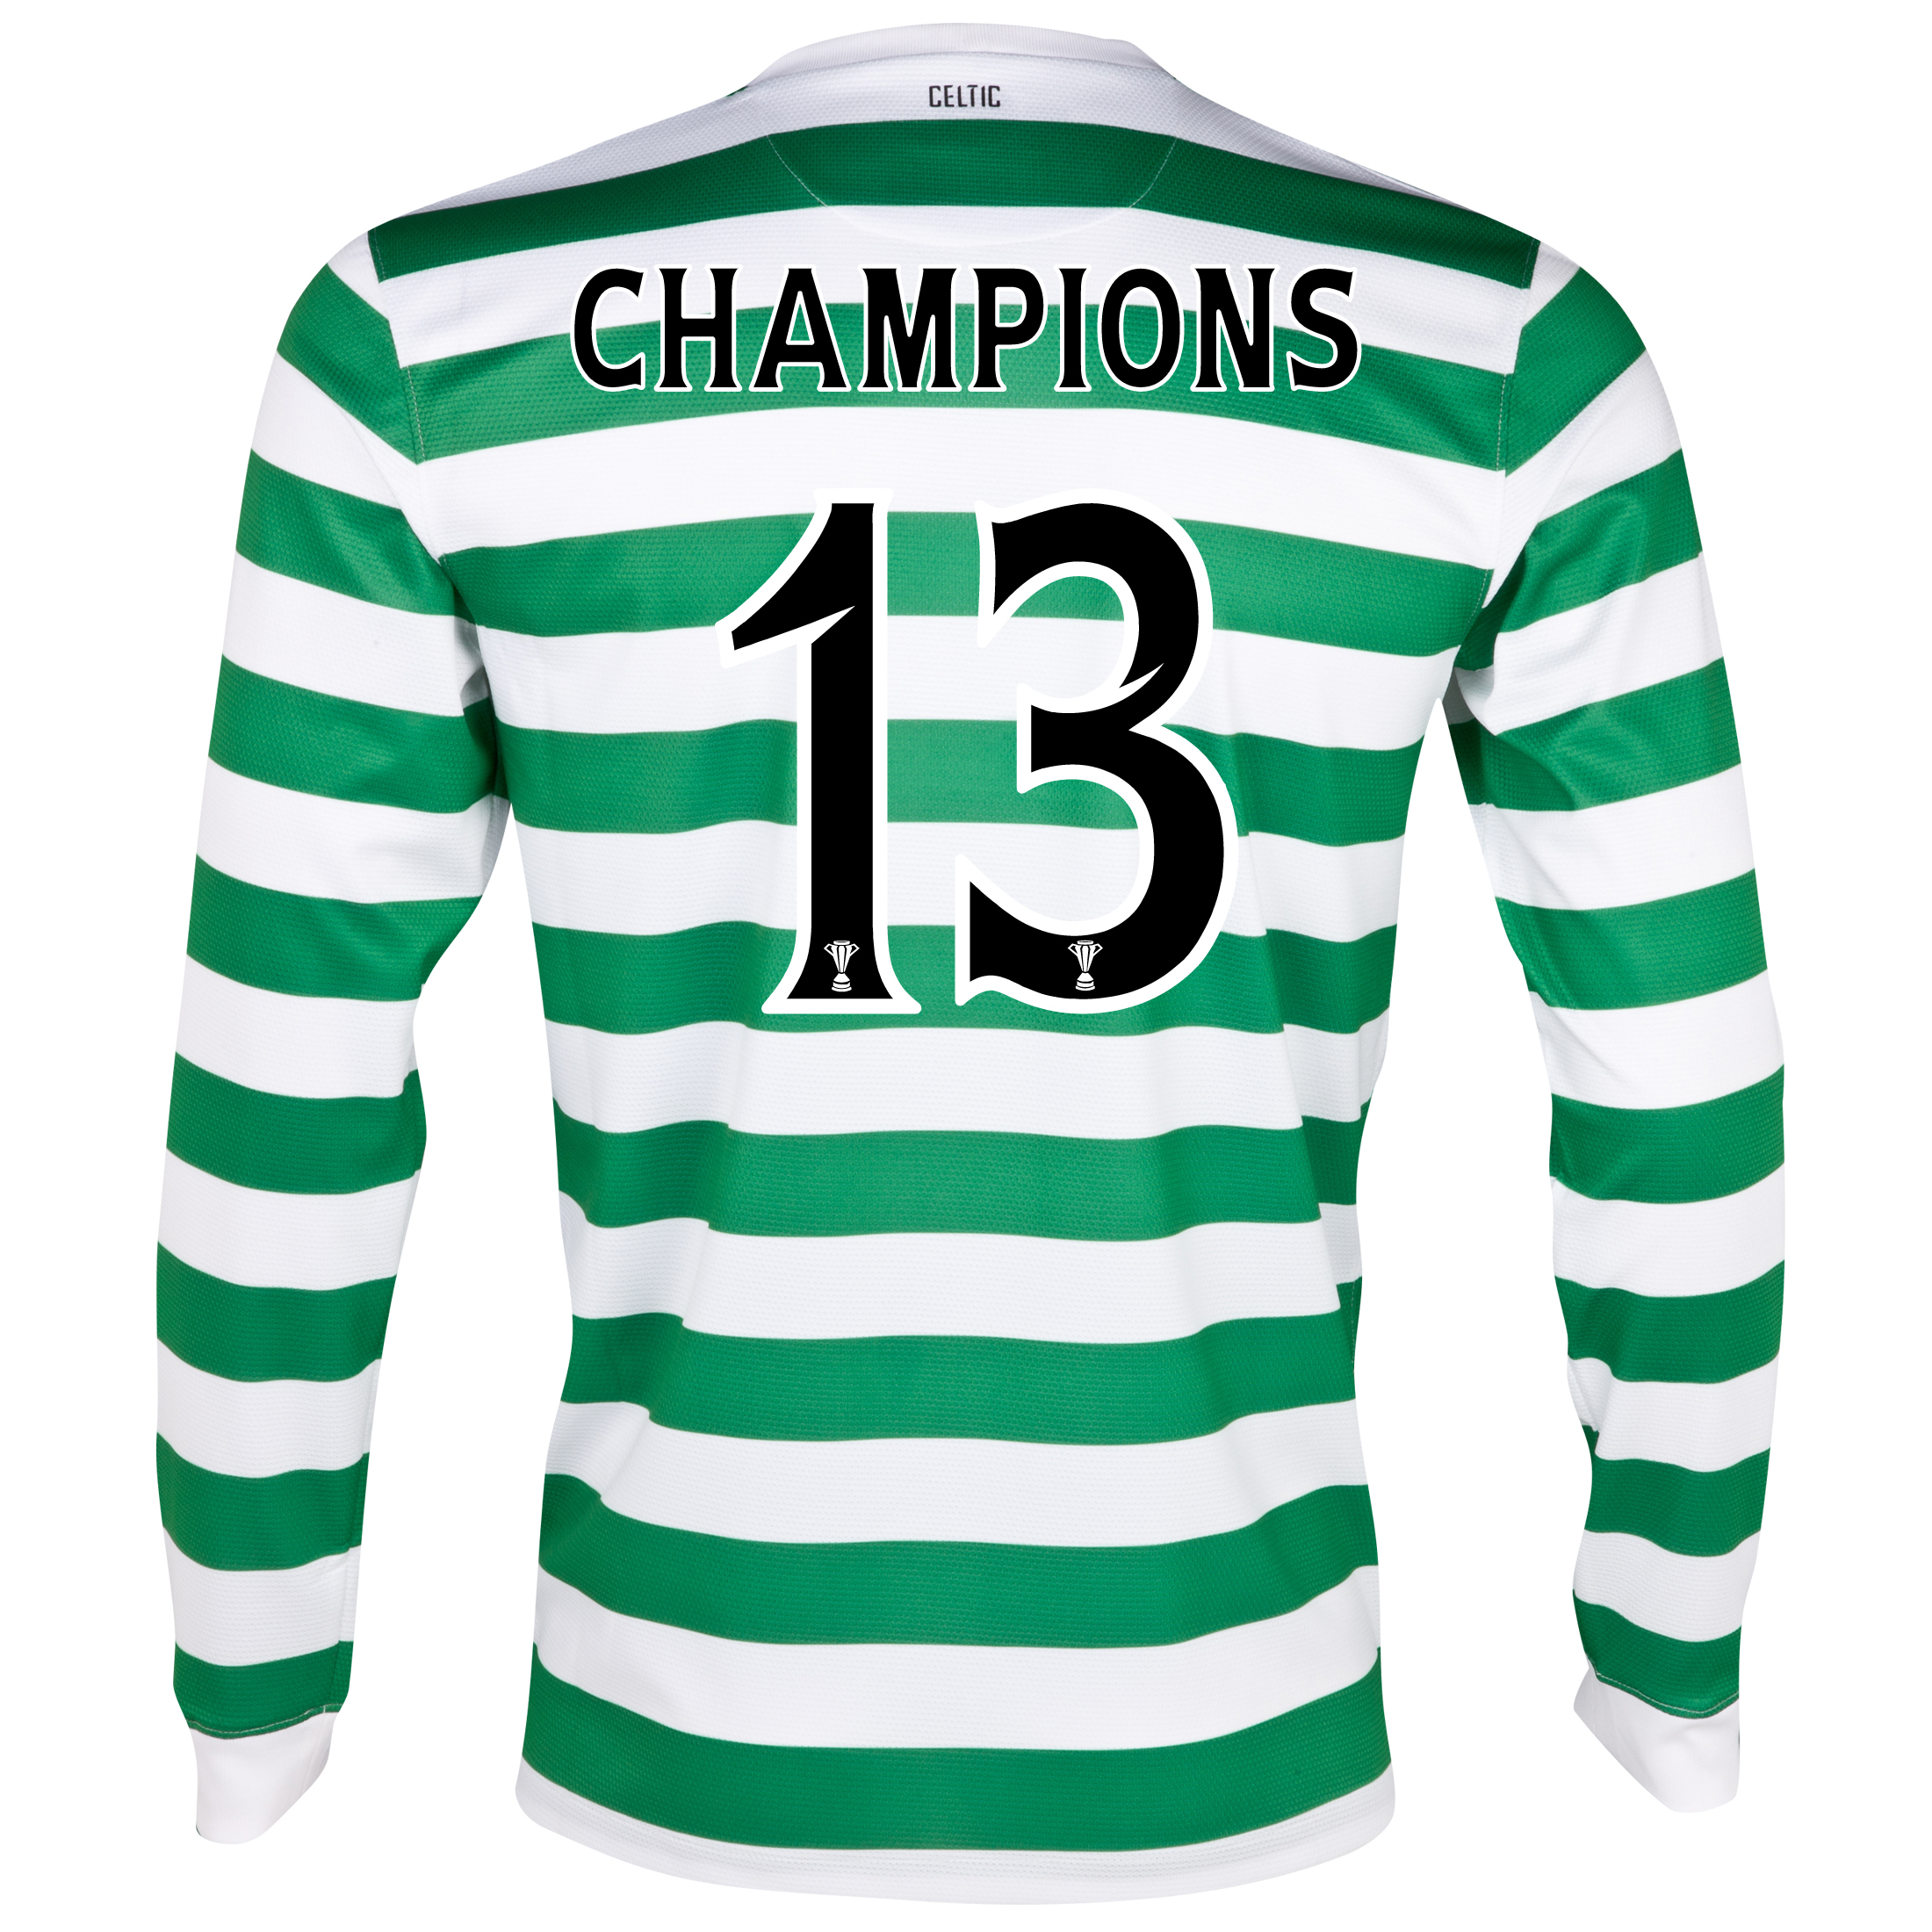 Celtic Home Shirt 2012/13 - Long Sleeved with Champions 13 printing